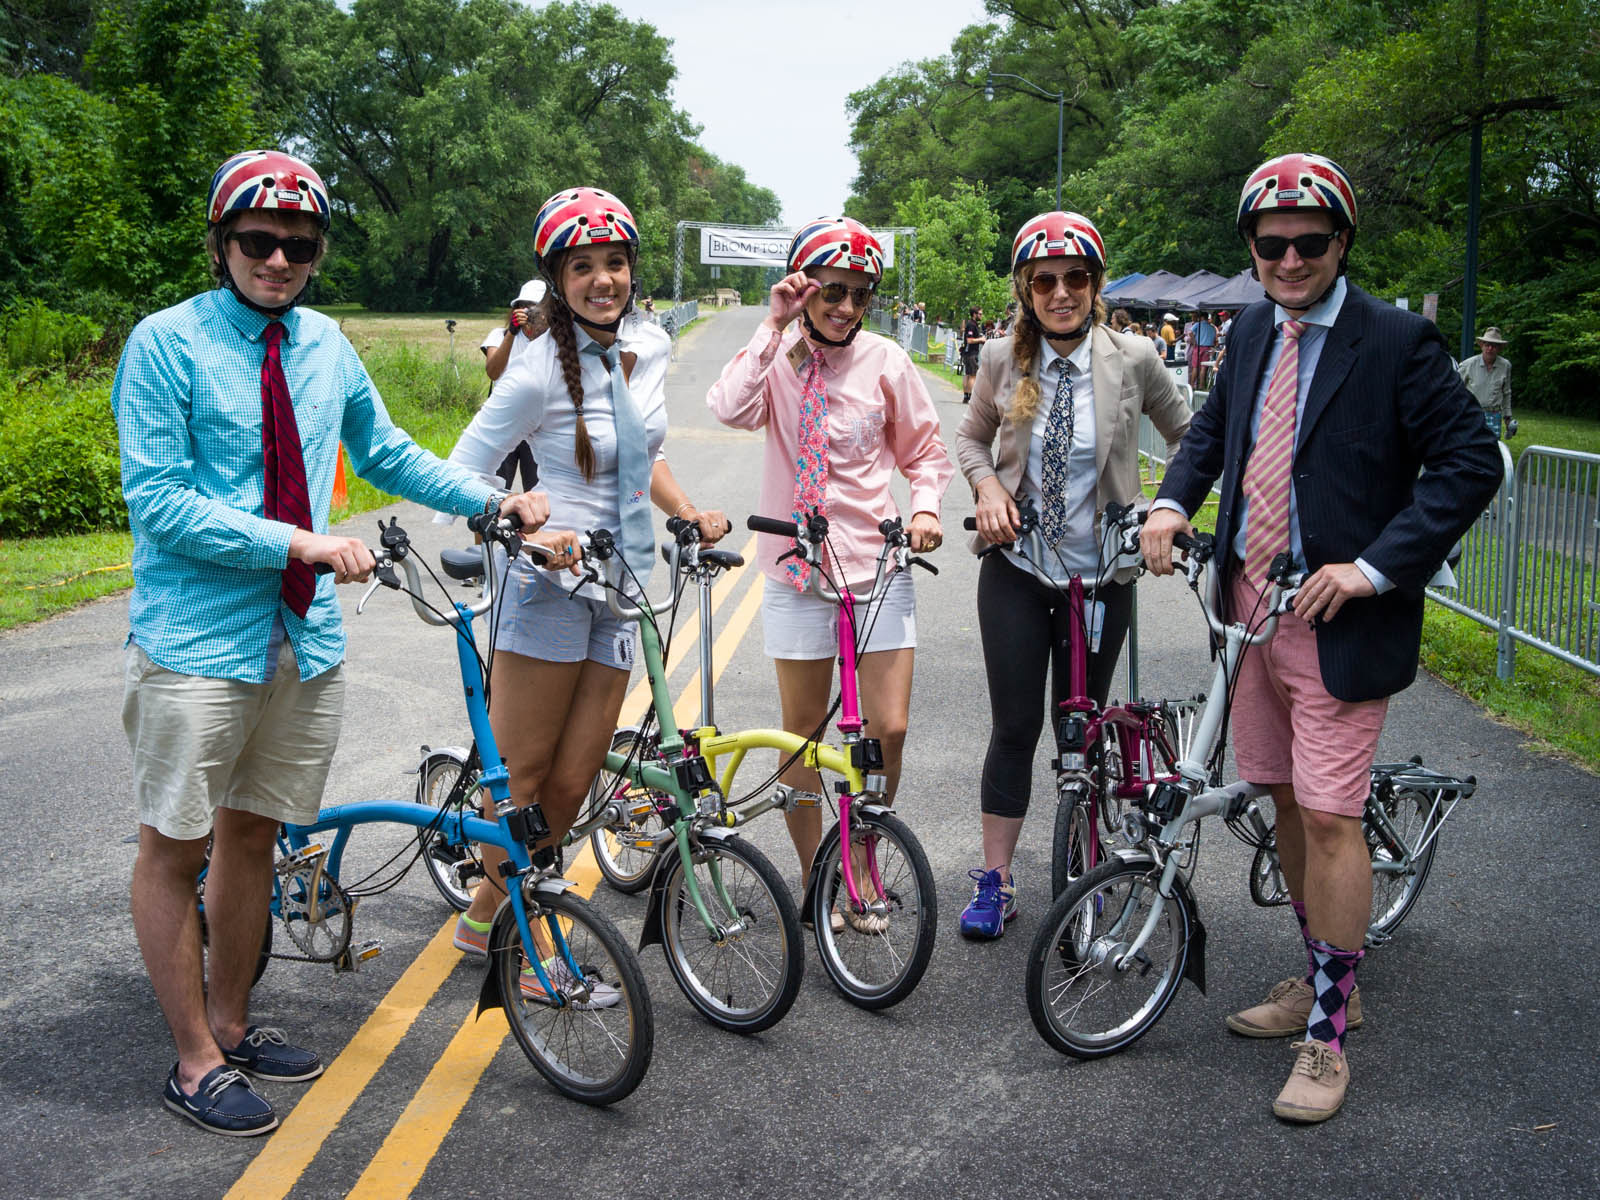 British Embassy staff at the   2014    Brompton U.S. Championship,  competing on  Brompton bicycles  and wearing  Union Jack Nutcase helmets